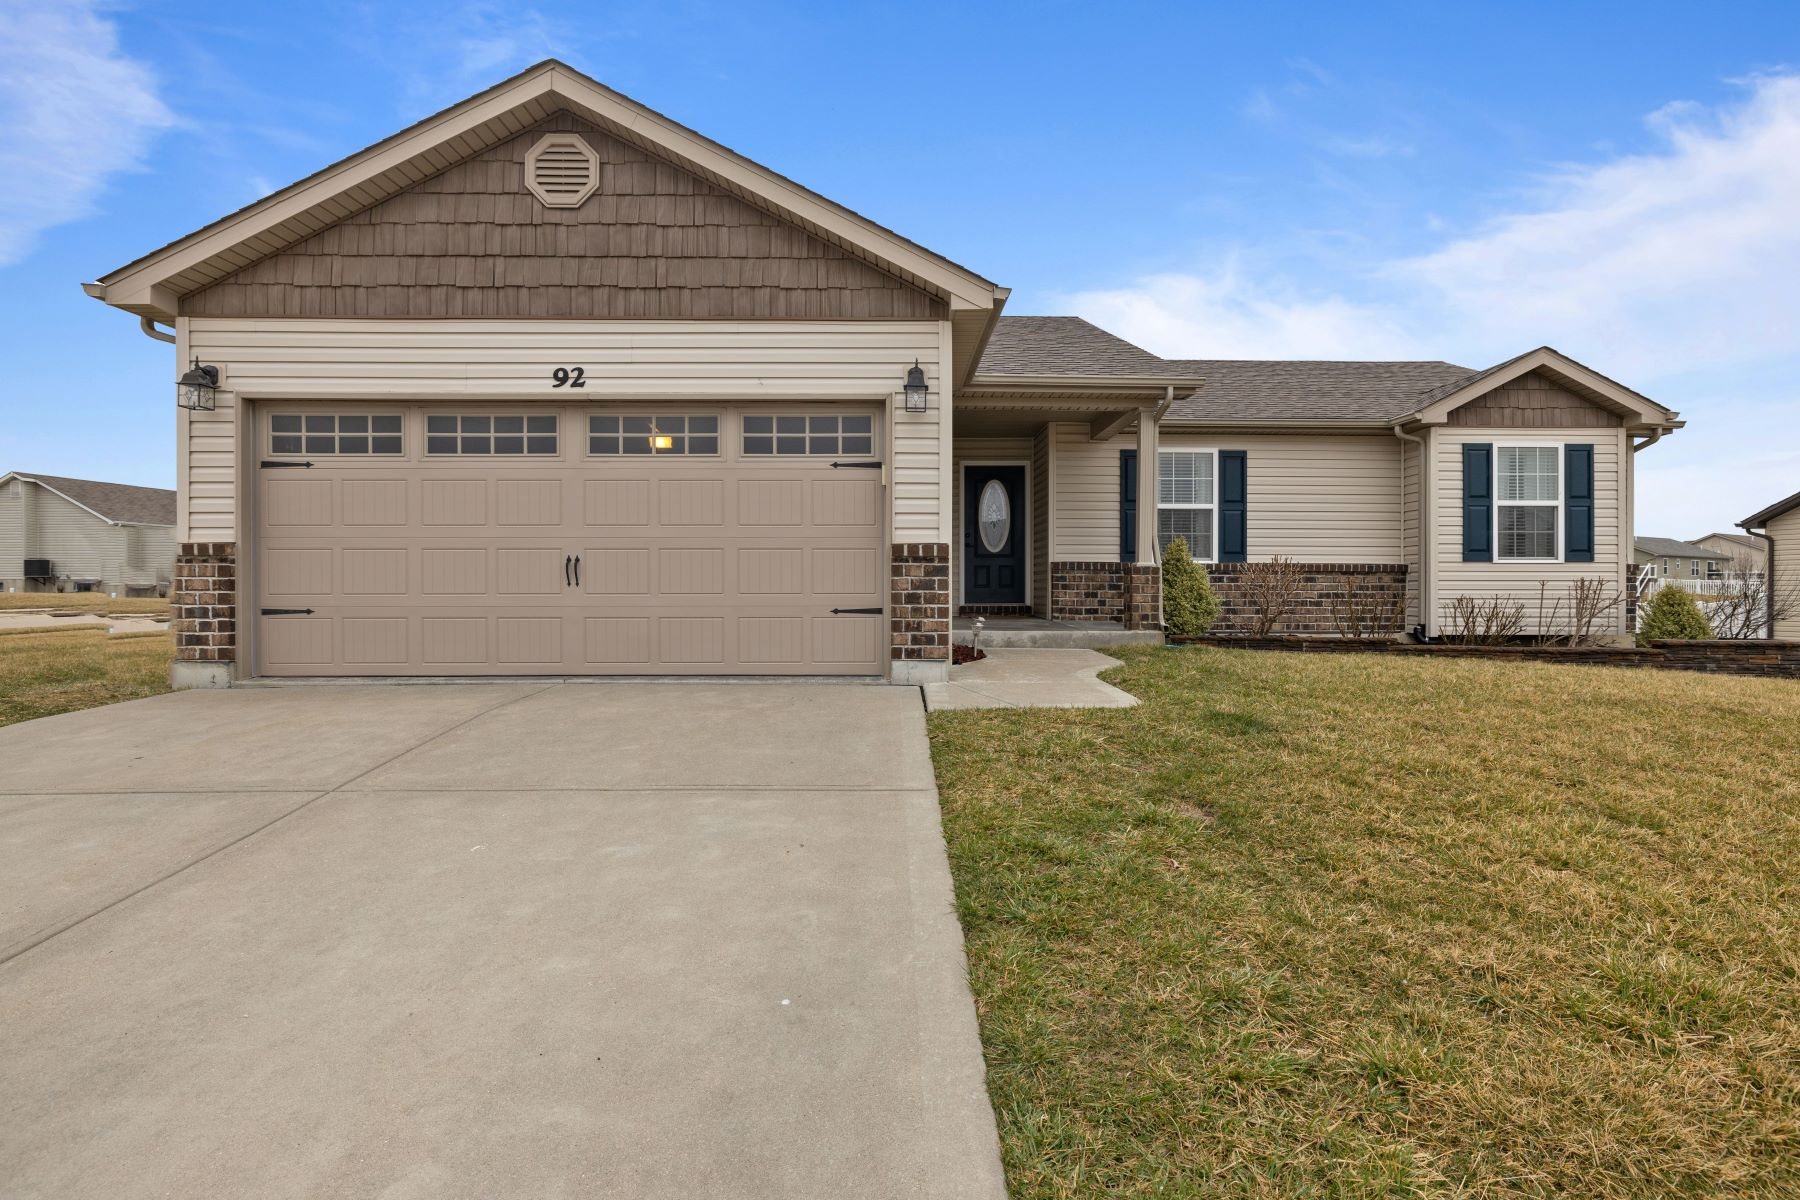 Single Family Homes for Active at Charming Wentzville Ranch — Great For Entertaining 92 Brookshire Creek Drive Wentzville, Missouri 63385 United States